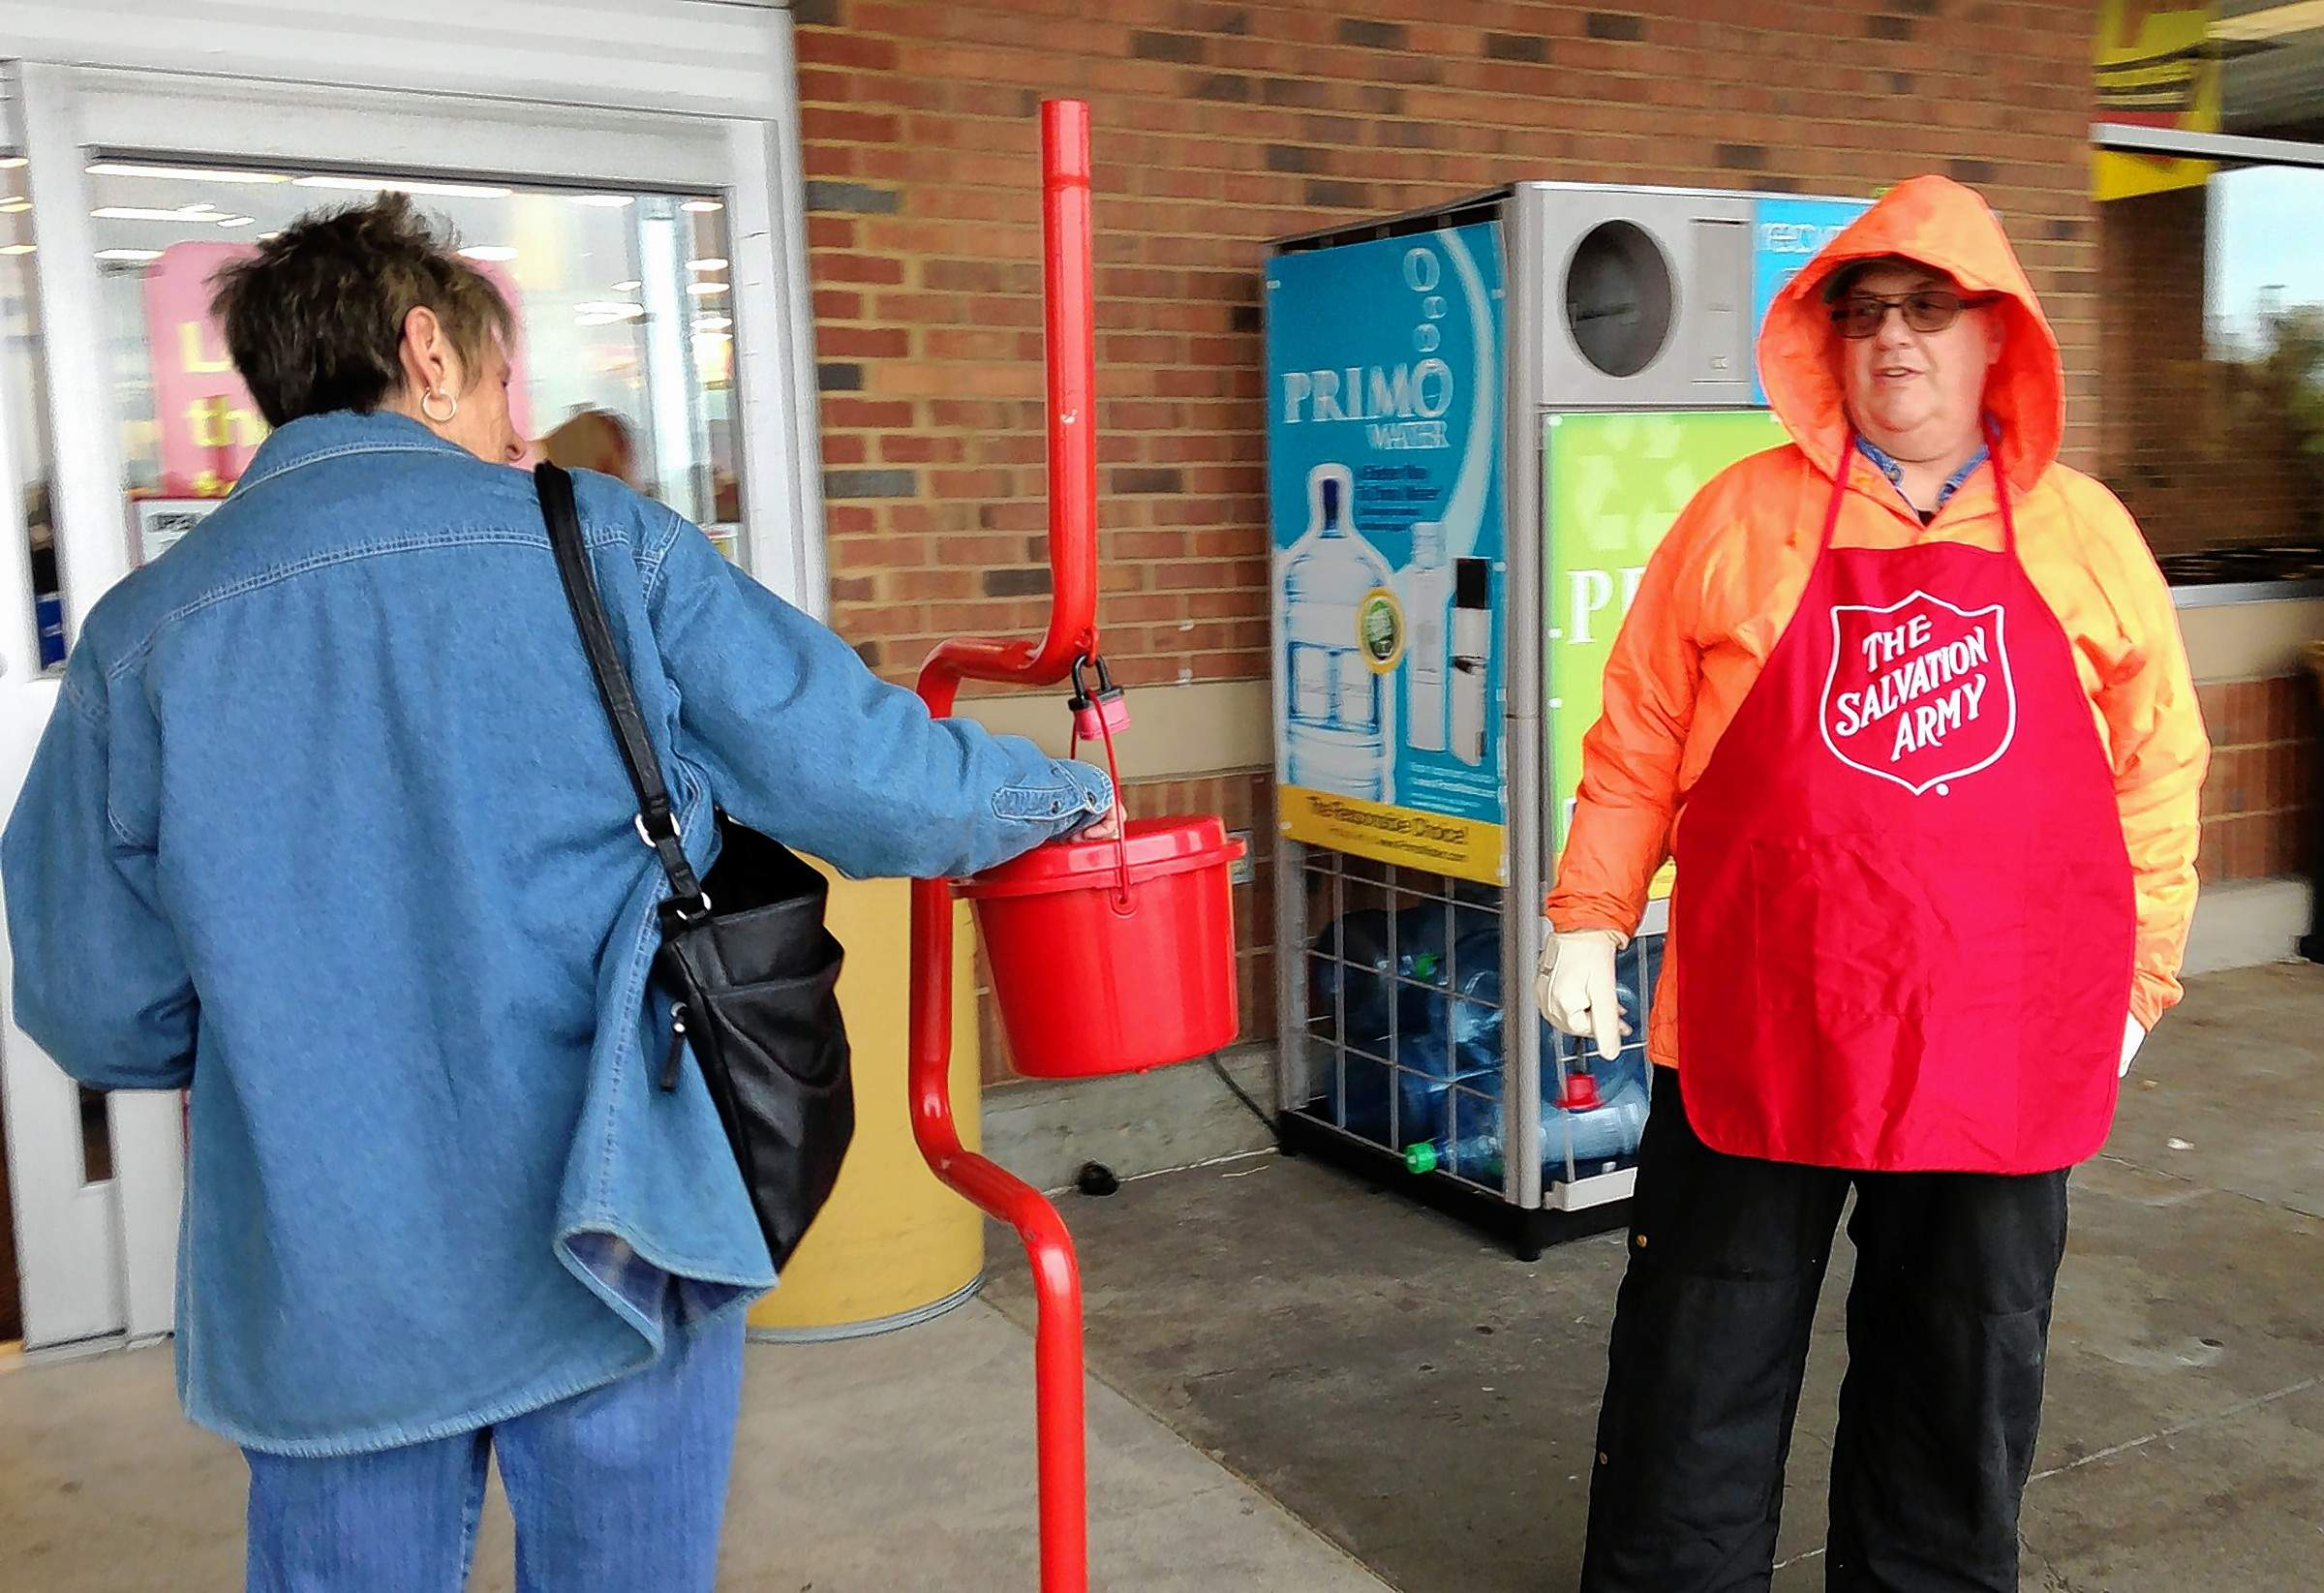 "This was the scene this week at the entrance to the Kroger grocery store in Marion where bell ringer Robert Bazzetti was accepting contributions. The Marion man said this was his first day and first year as a bell ringer. ""It hasn't been too bad so far, although the air was a little crisp when I started this morning!"" he said."